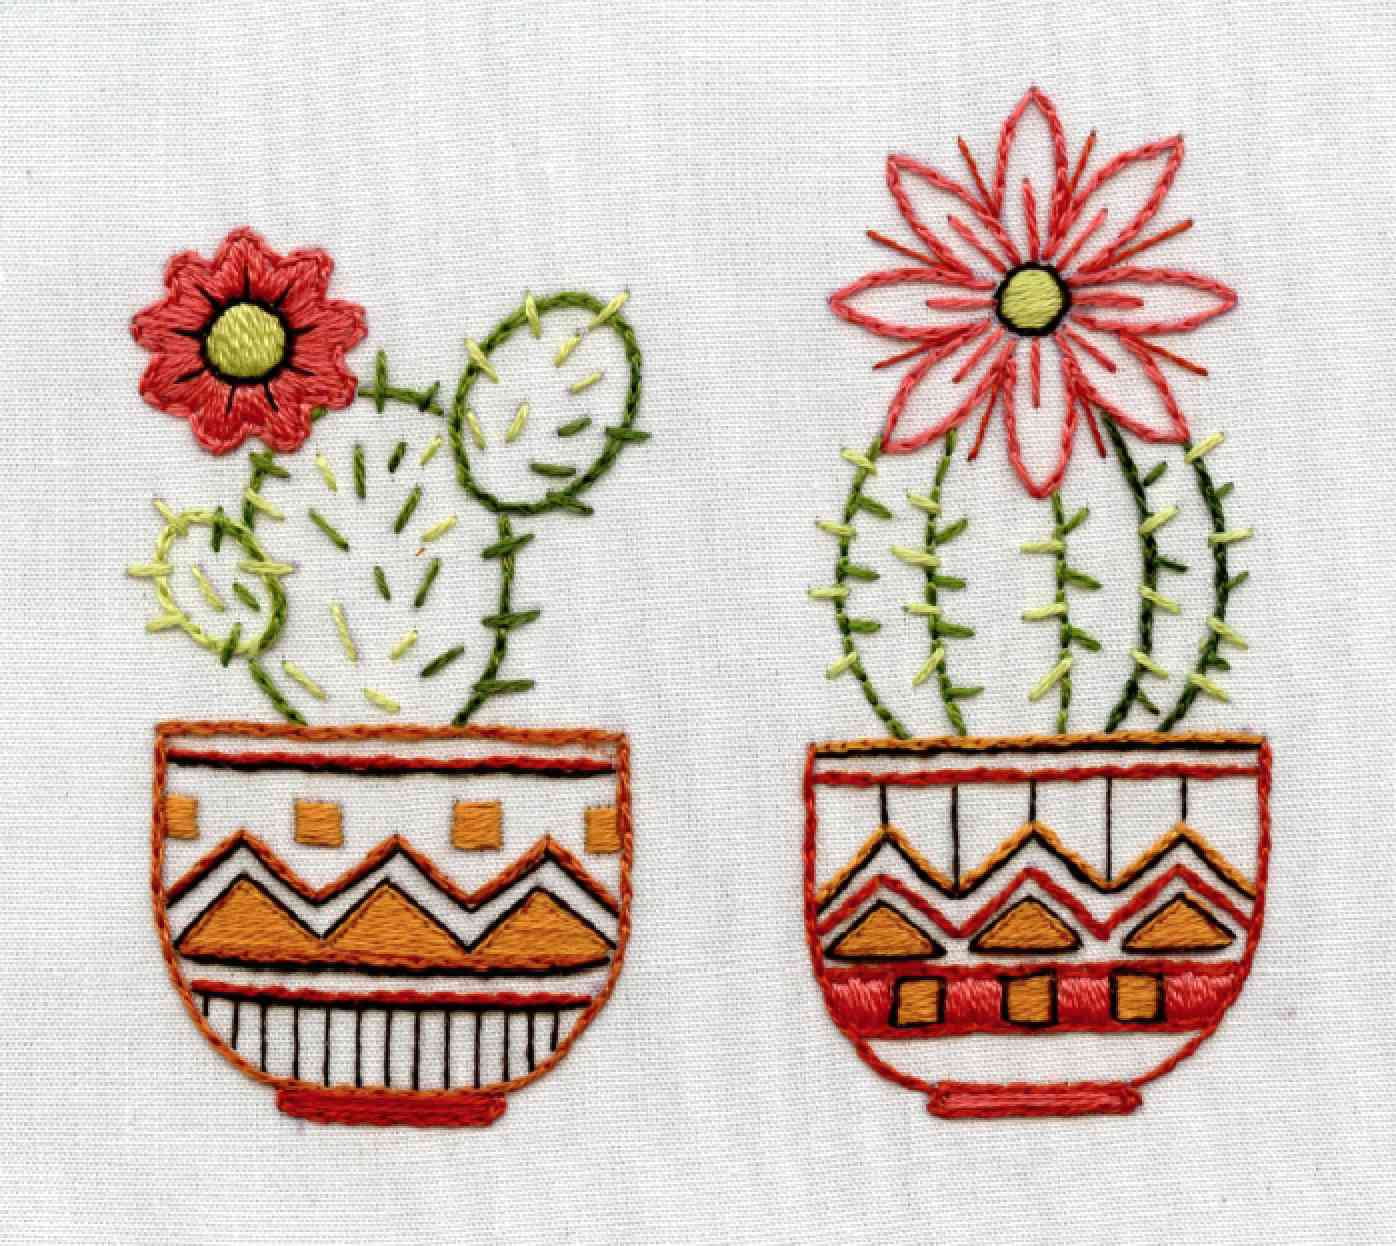 Cacti in Patterned Pots Embroidery Pattern